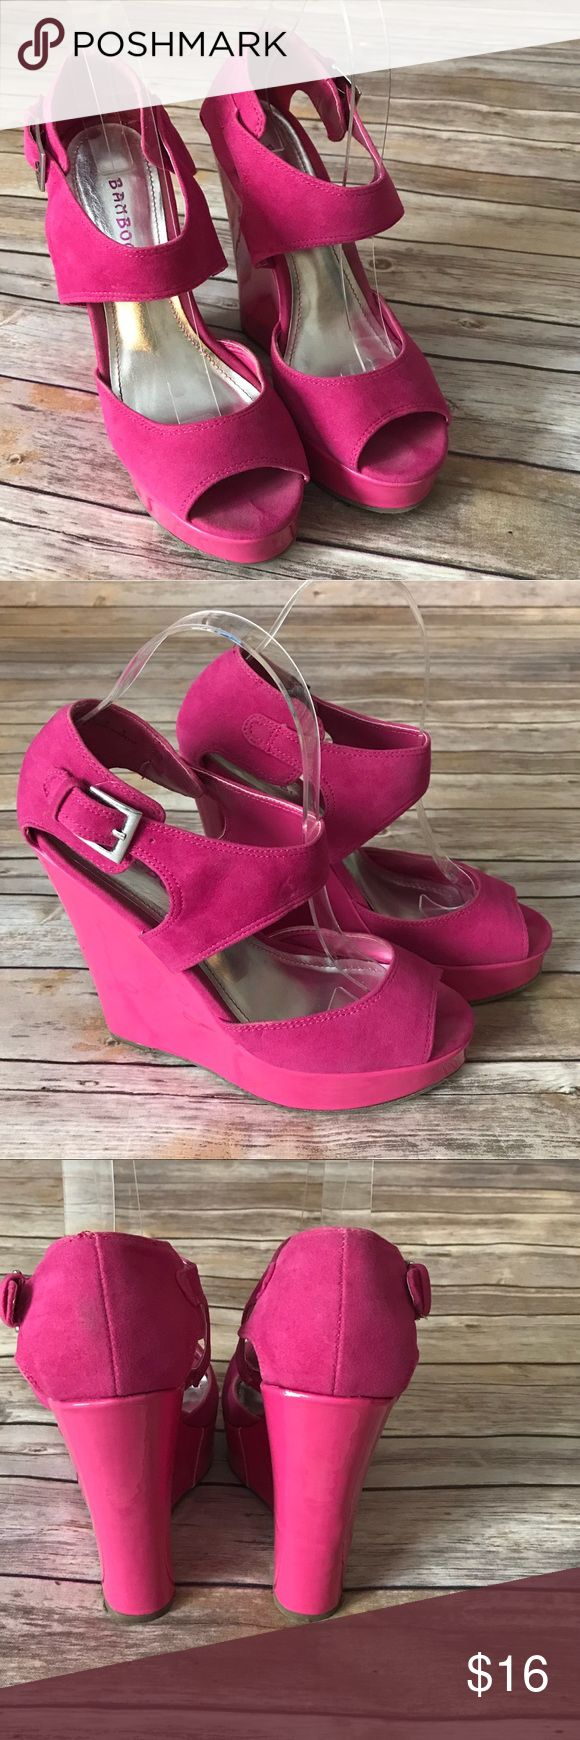 Bamboo Size 8 Hot Pink  Wedges 5 1/2 inch wedge.  Small white spot on back of right shoe.  Silver hardware BAMBOO Shoes Wedges